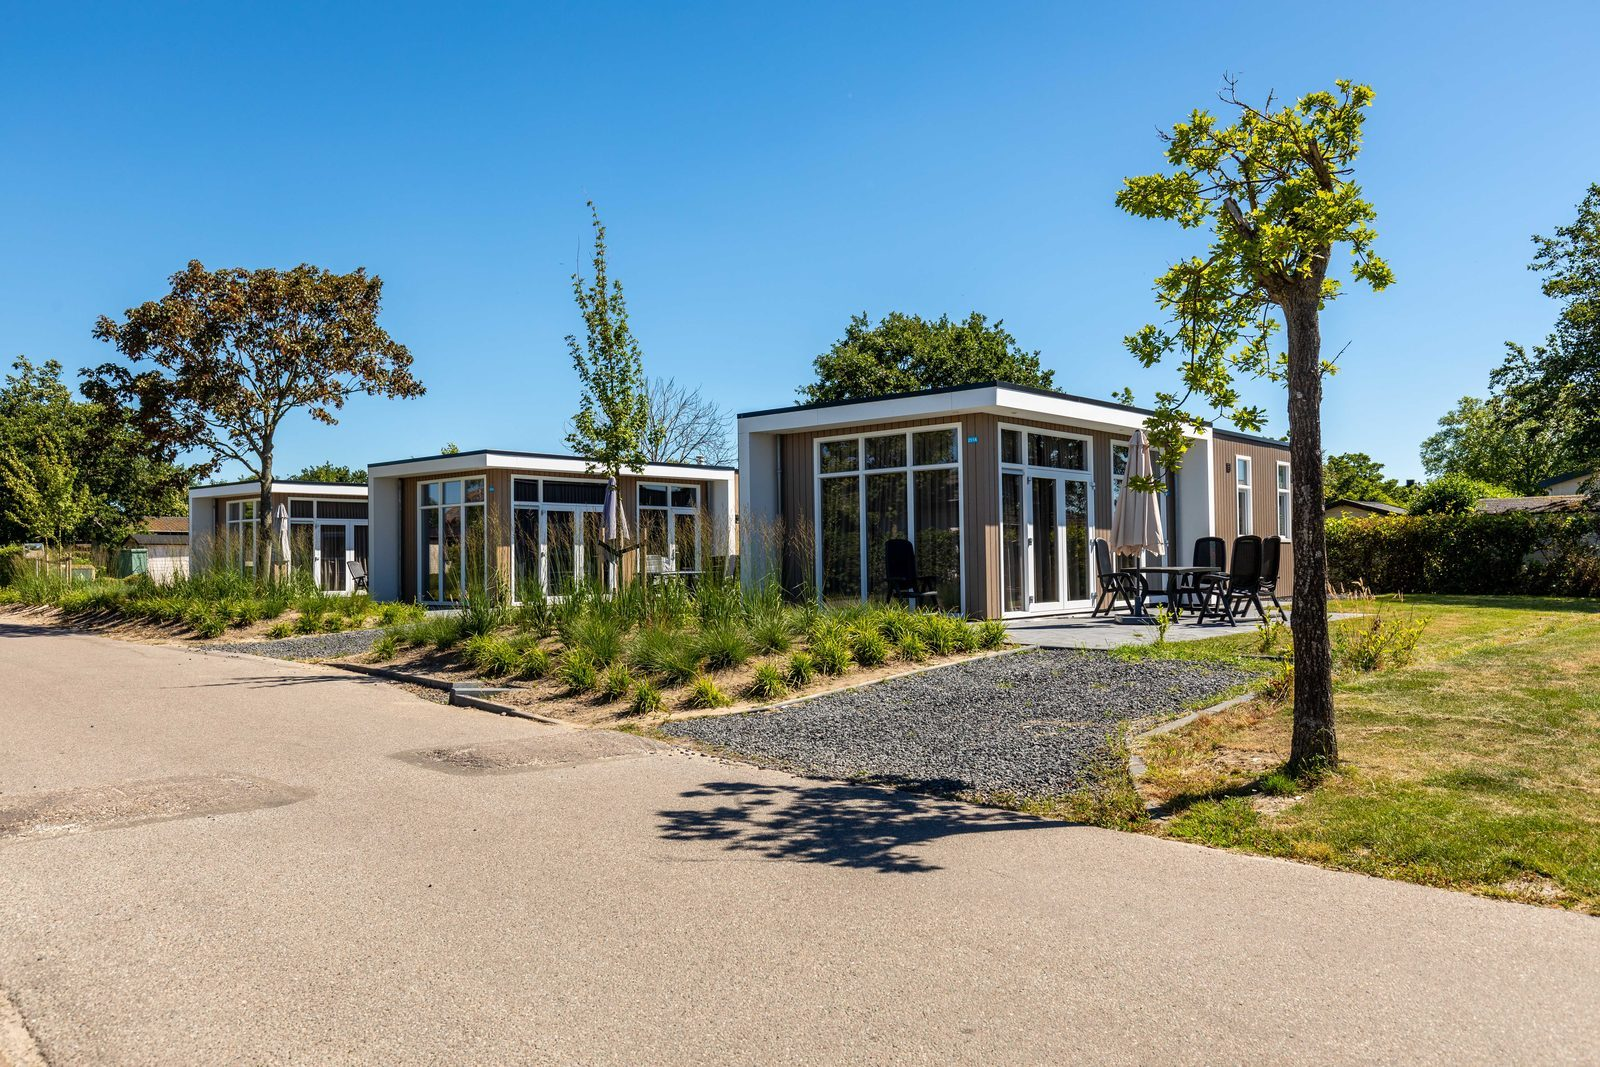 Holiday homes for sale in Egmond